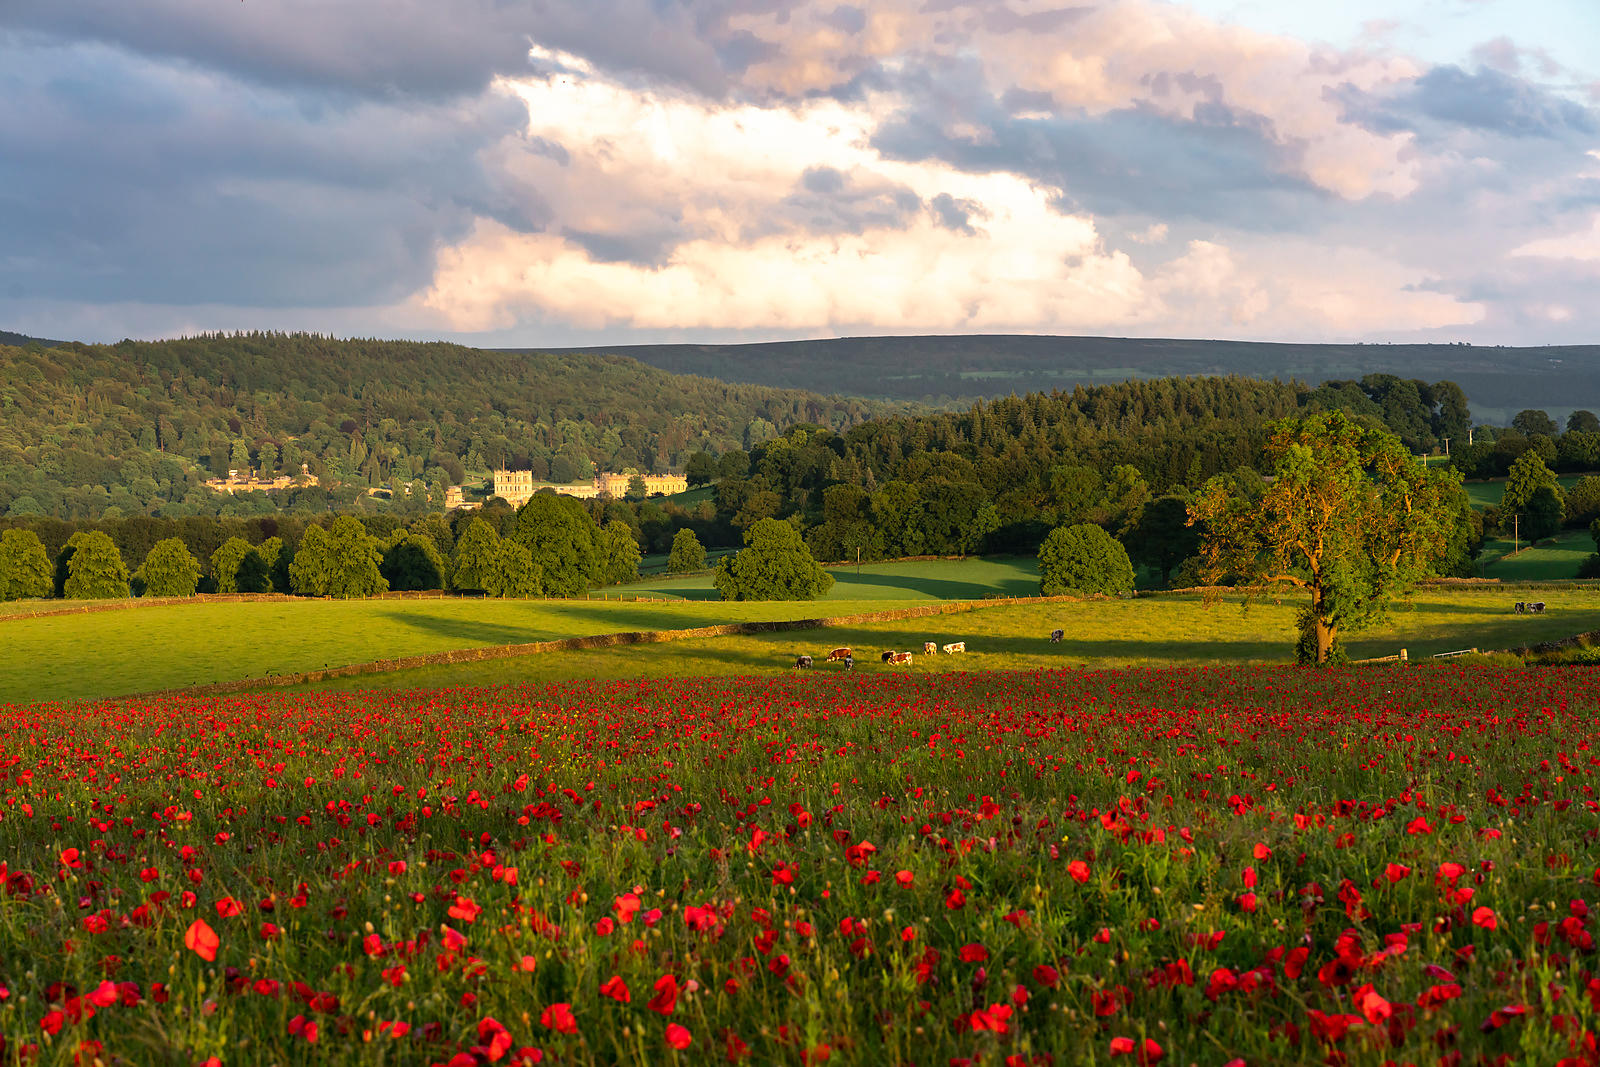 Chatsworth and the poppy field